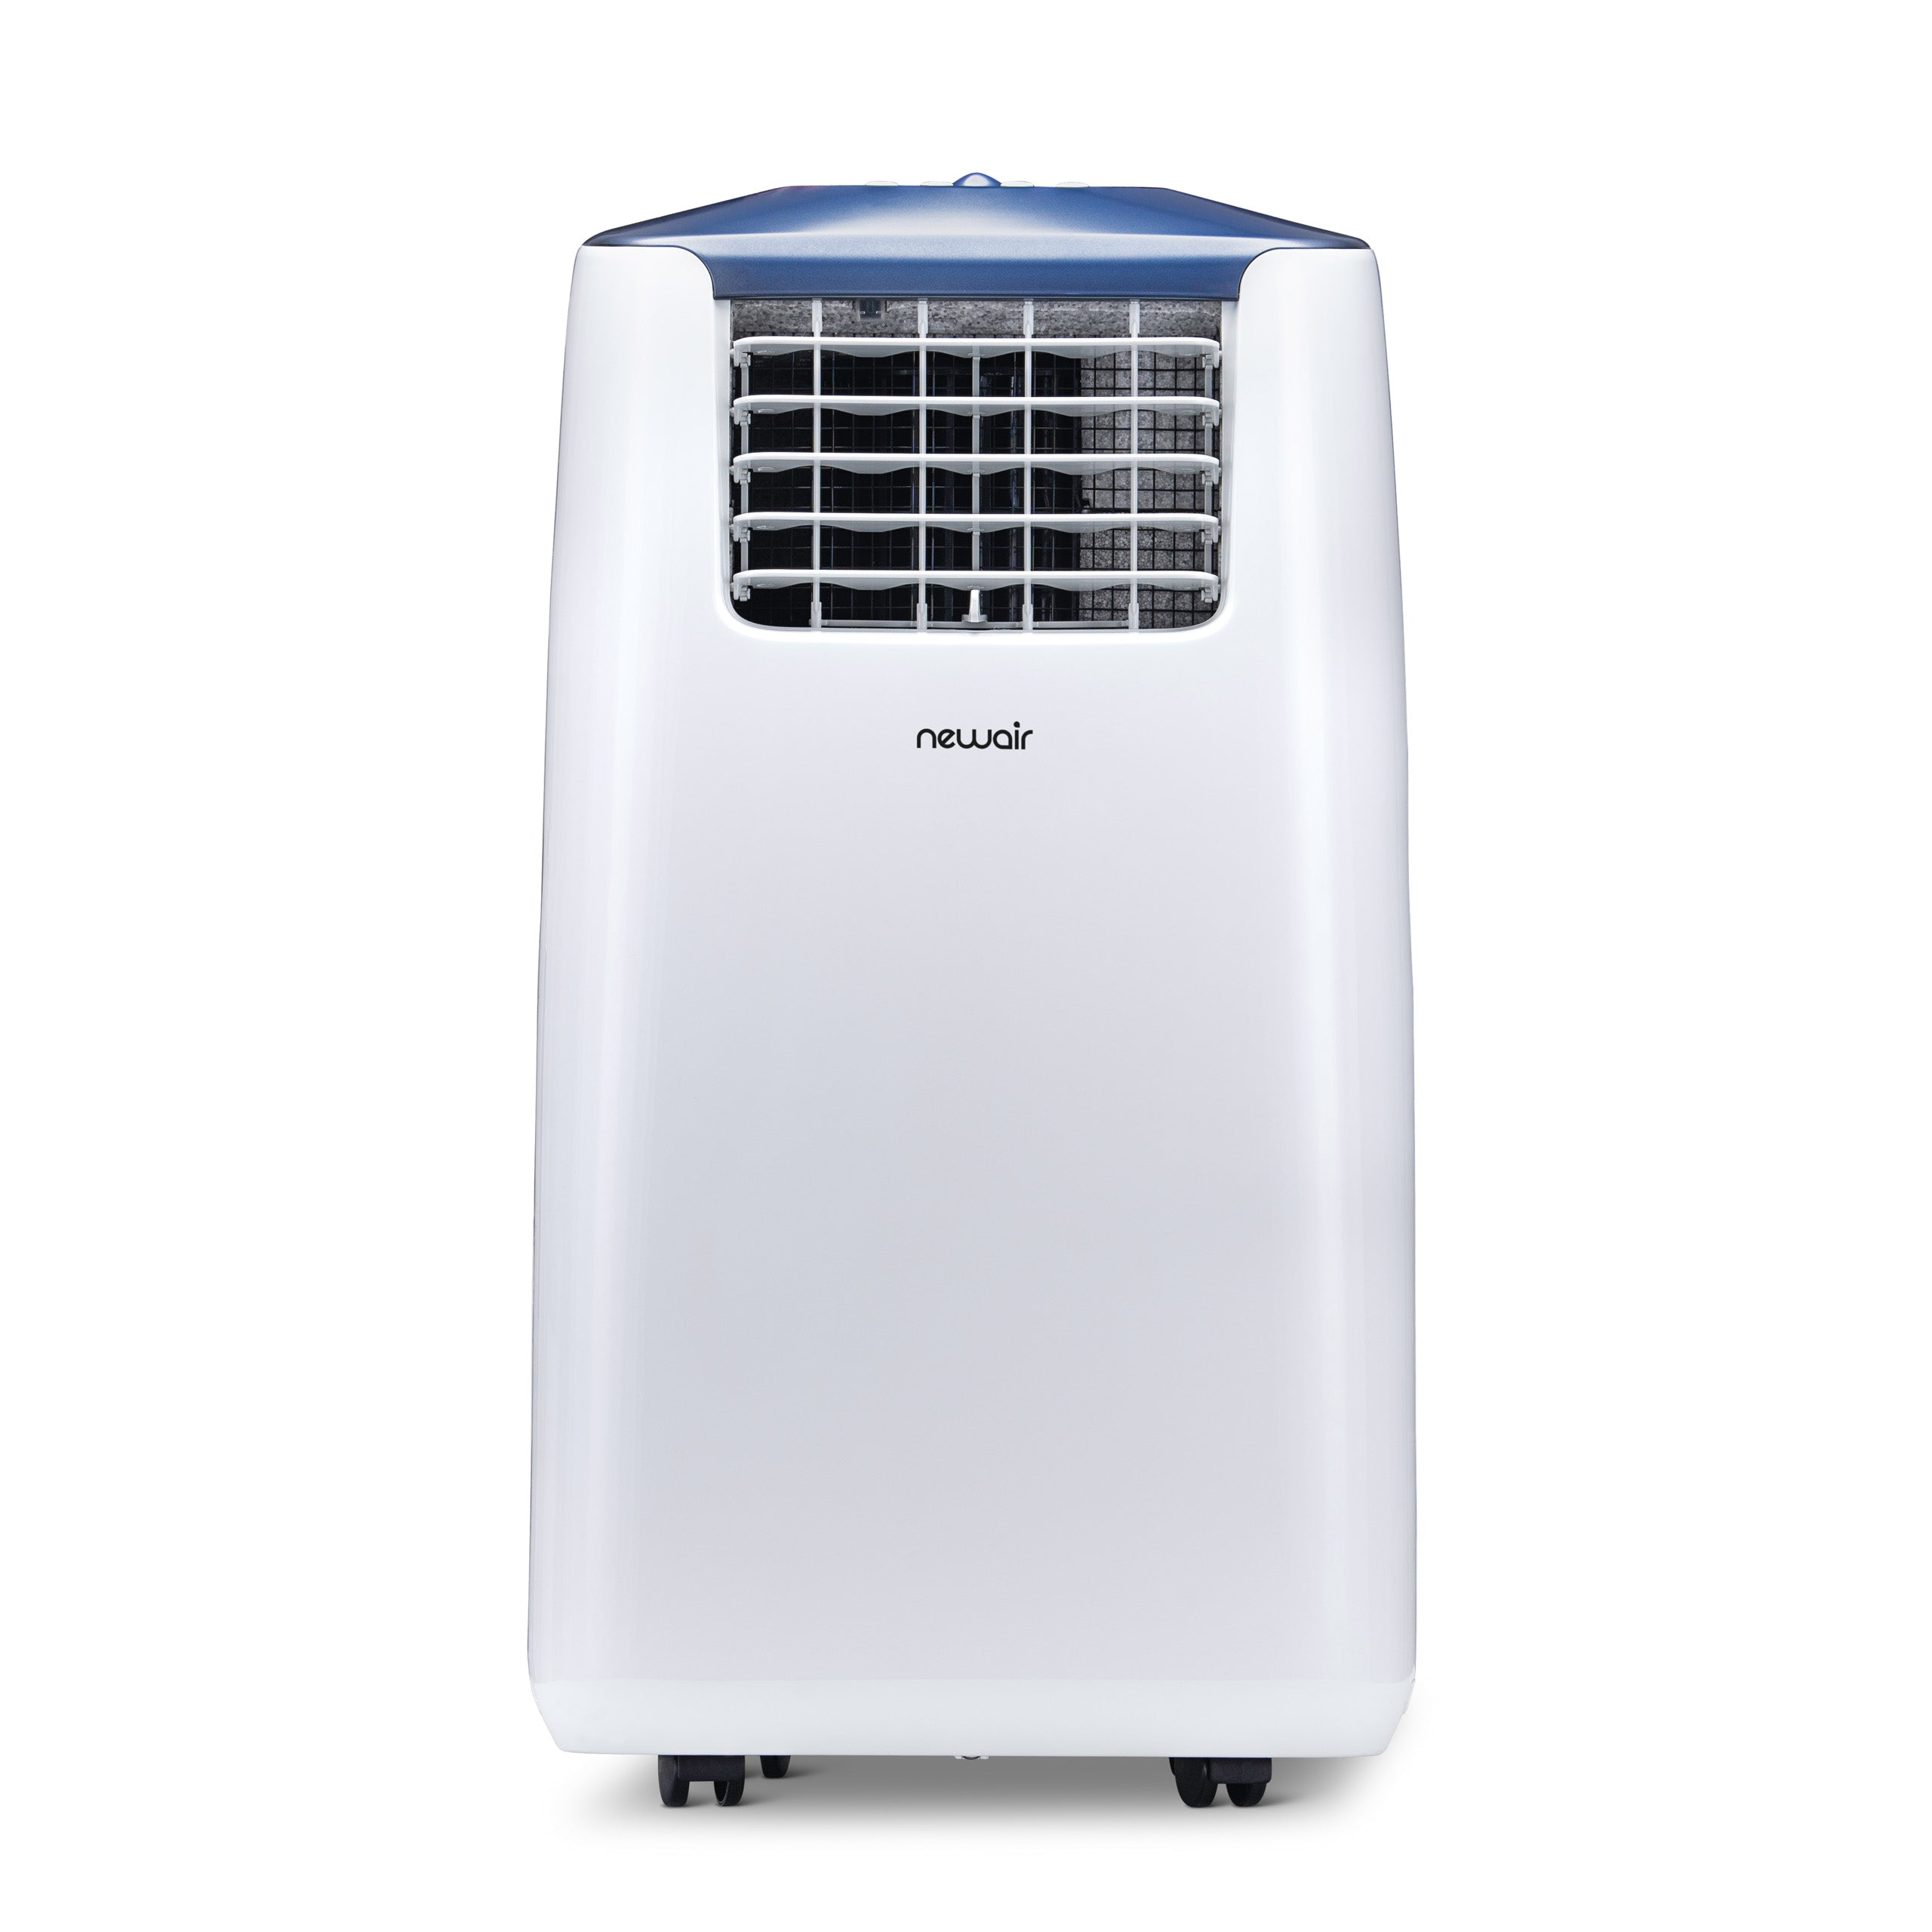 NewAir_Portable_Air_Conditioner_and_Heater_14000_BTUs_8600_BTU_DOE_Cools_525_sq_ft